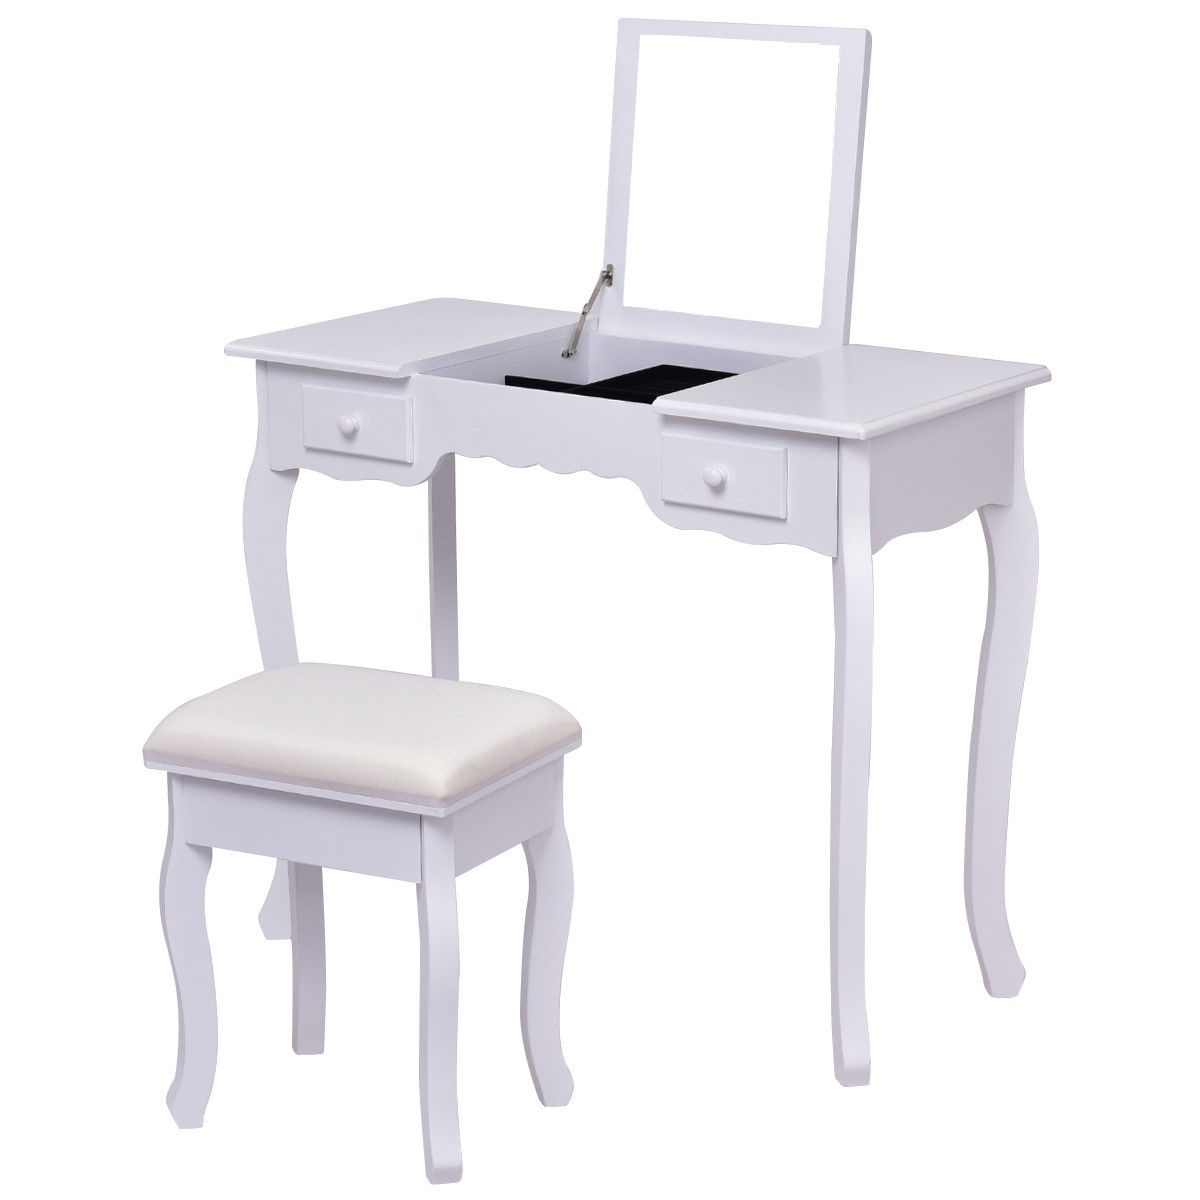 Mirrored Bathroom Dressing Vanity Table Set w/ Stool